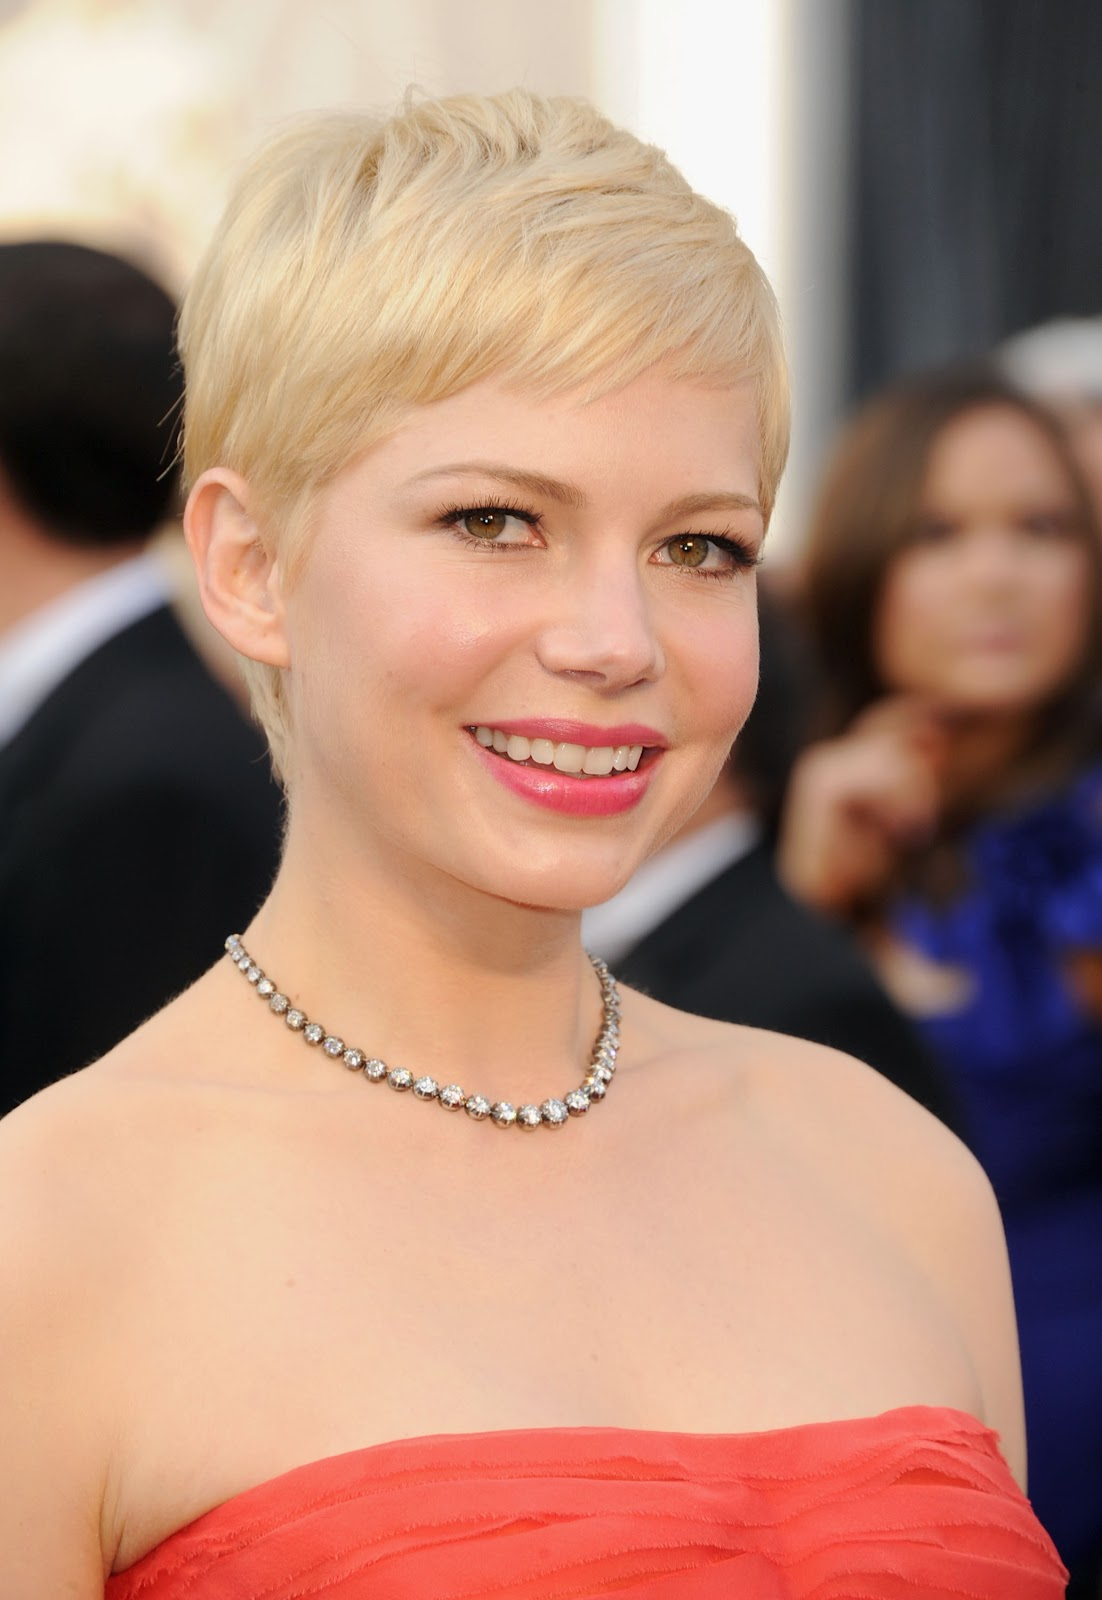 http://3.bp.blogspot.com/-9JjNuAPices/T01gFlFScaI/AAAAAAAAANQ/bgbIzsxVwmM/s1600/michelle_williams_84th_annual_academy_awards_26feb2012__7V29b3m.jpg